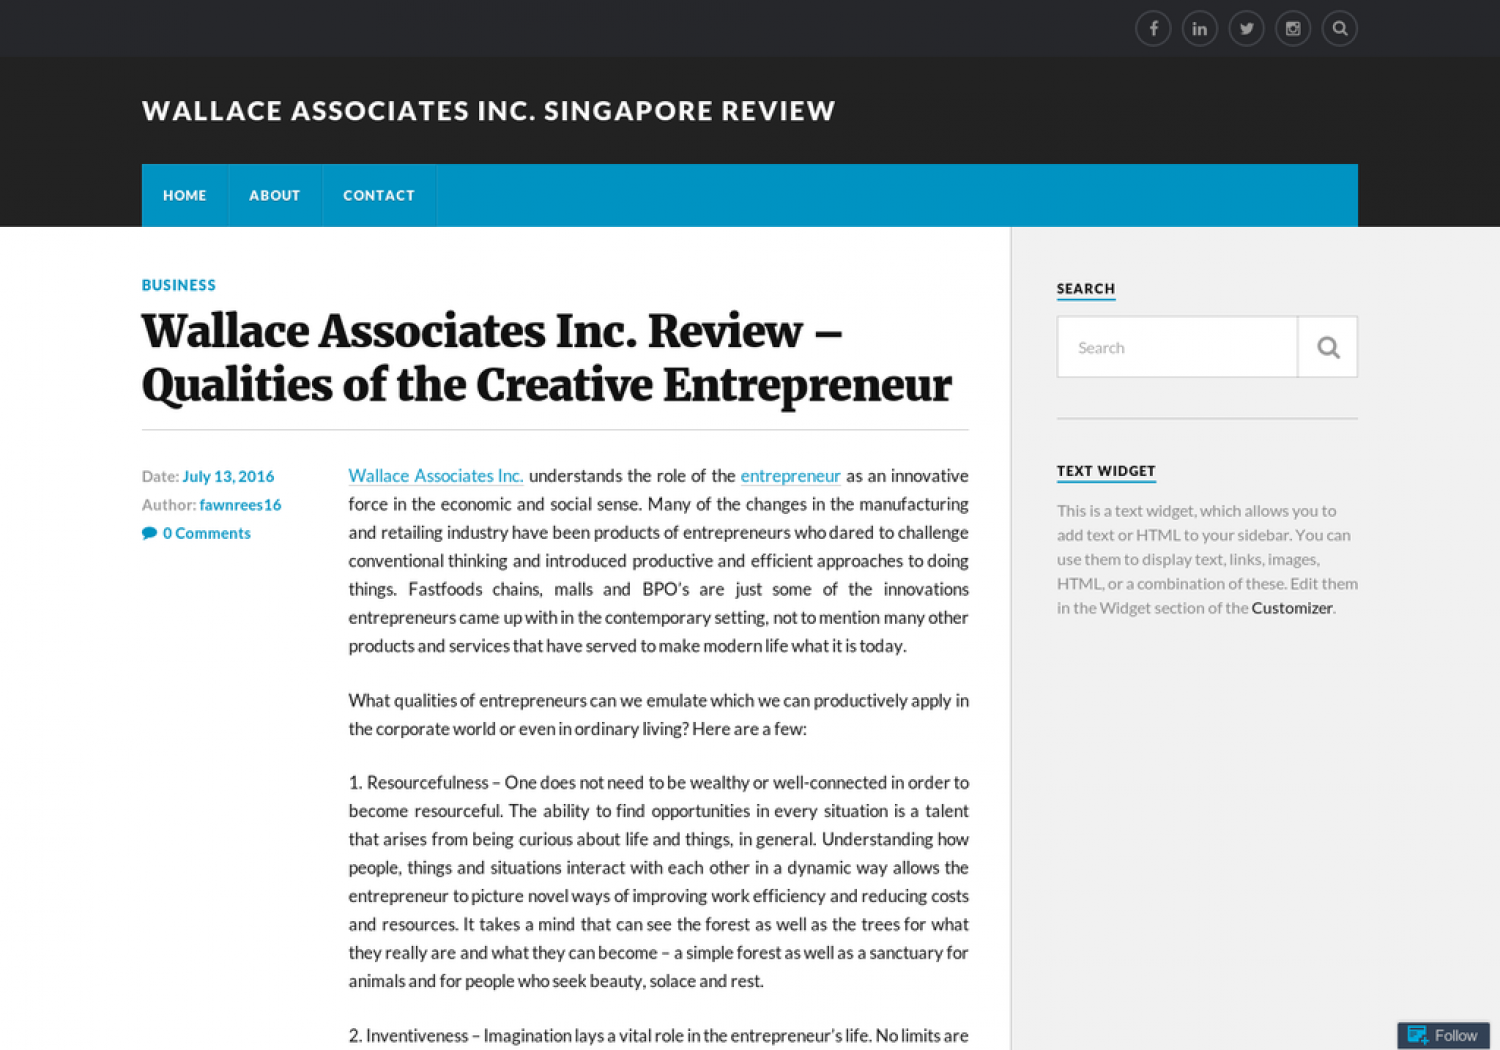 Wallace Associates Inc. Review - Qualities of the Creative Entrepreneur Infographic